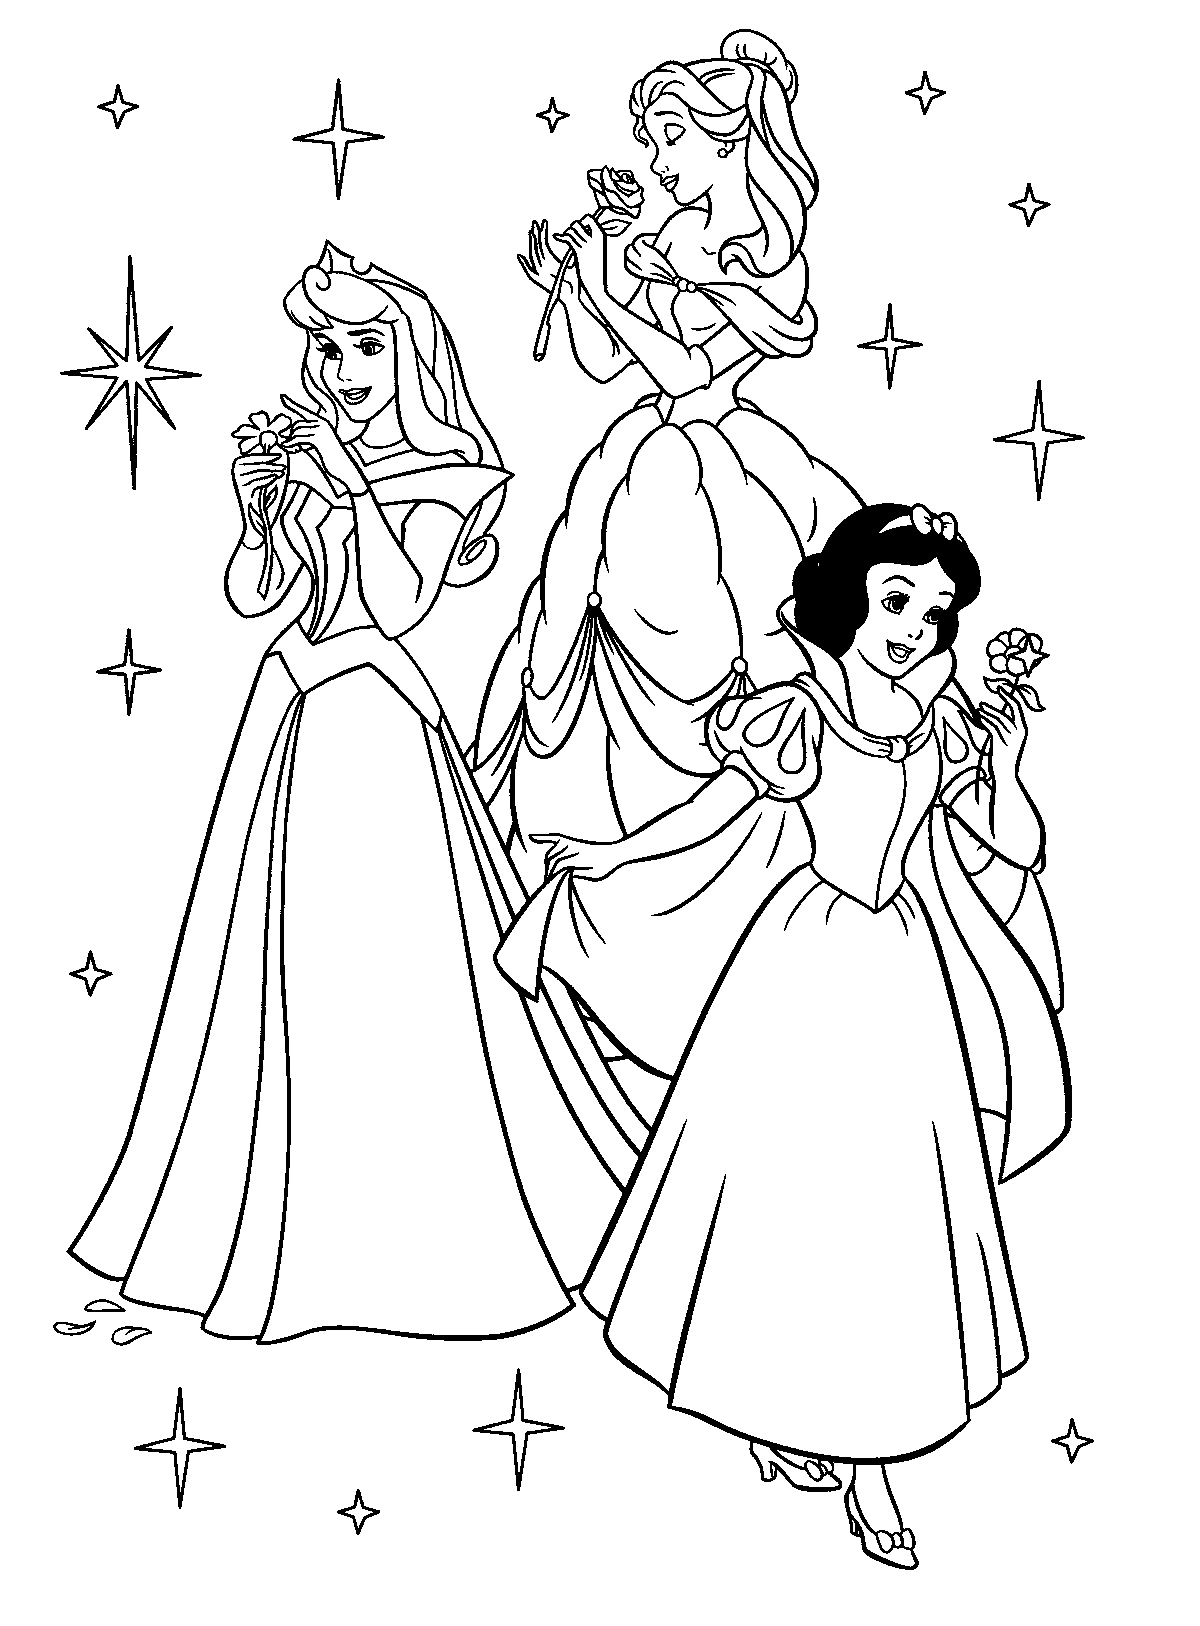 Princess coloring pages best coloring pages kids, disney princess coloring pages